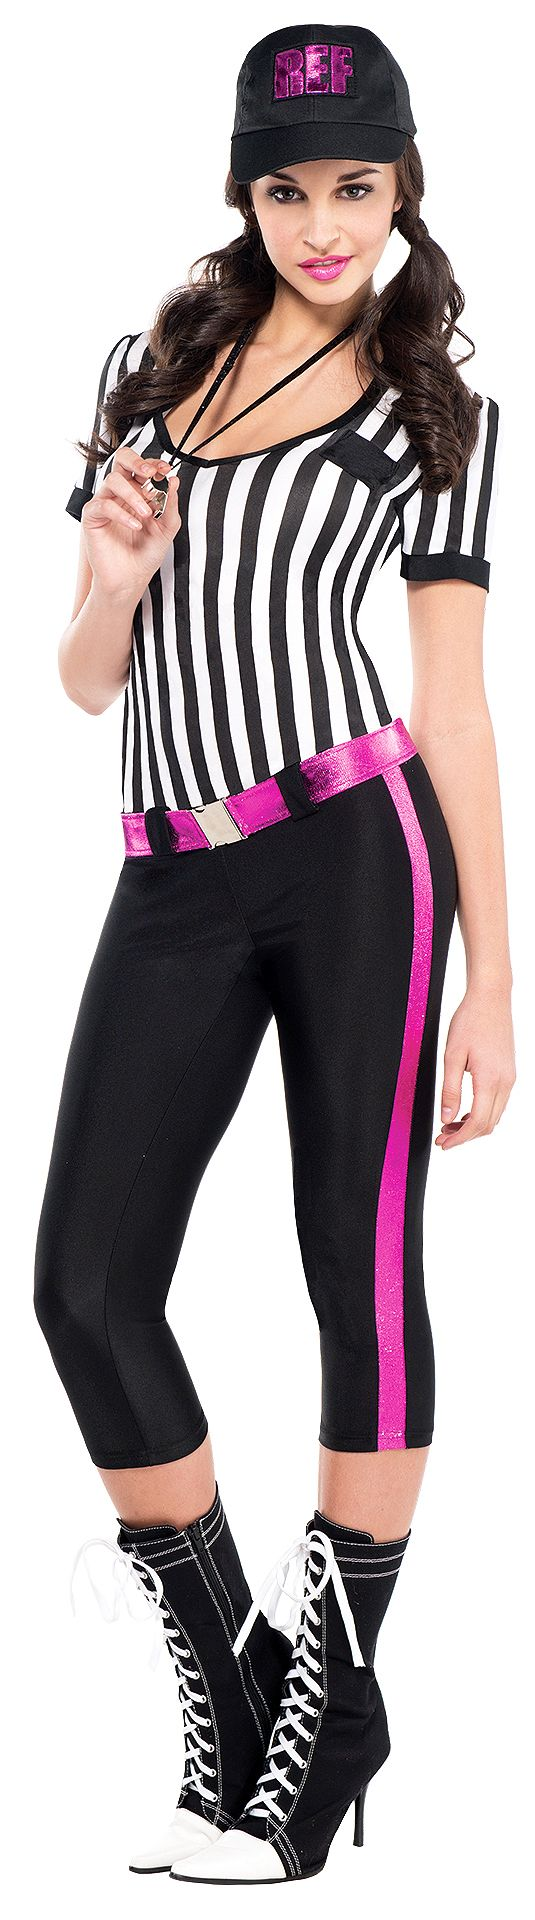 Instant Replay Referee Costume.